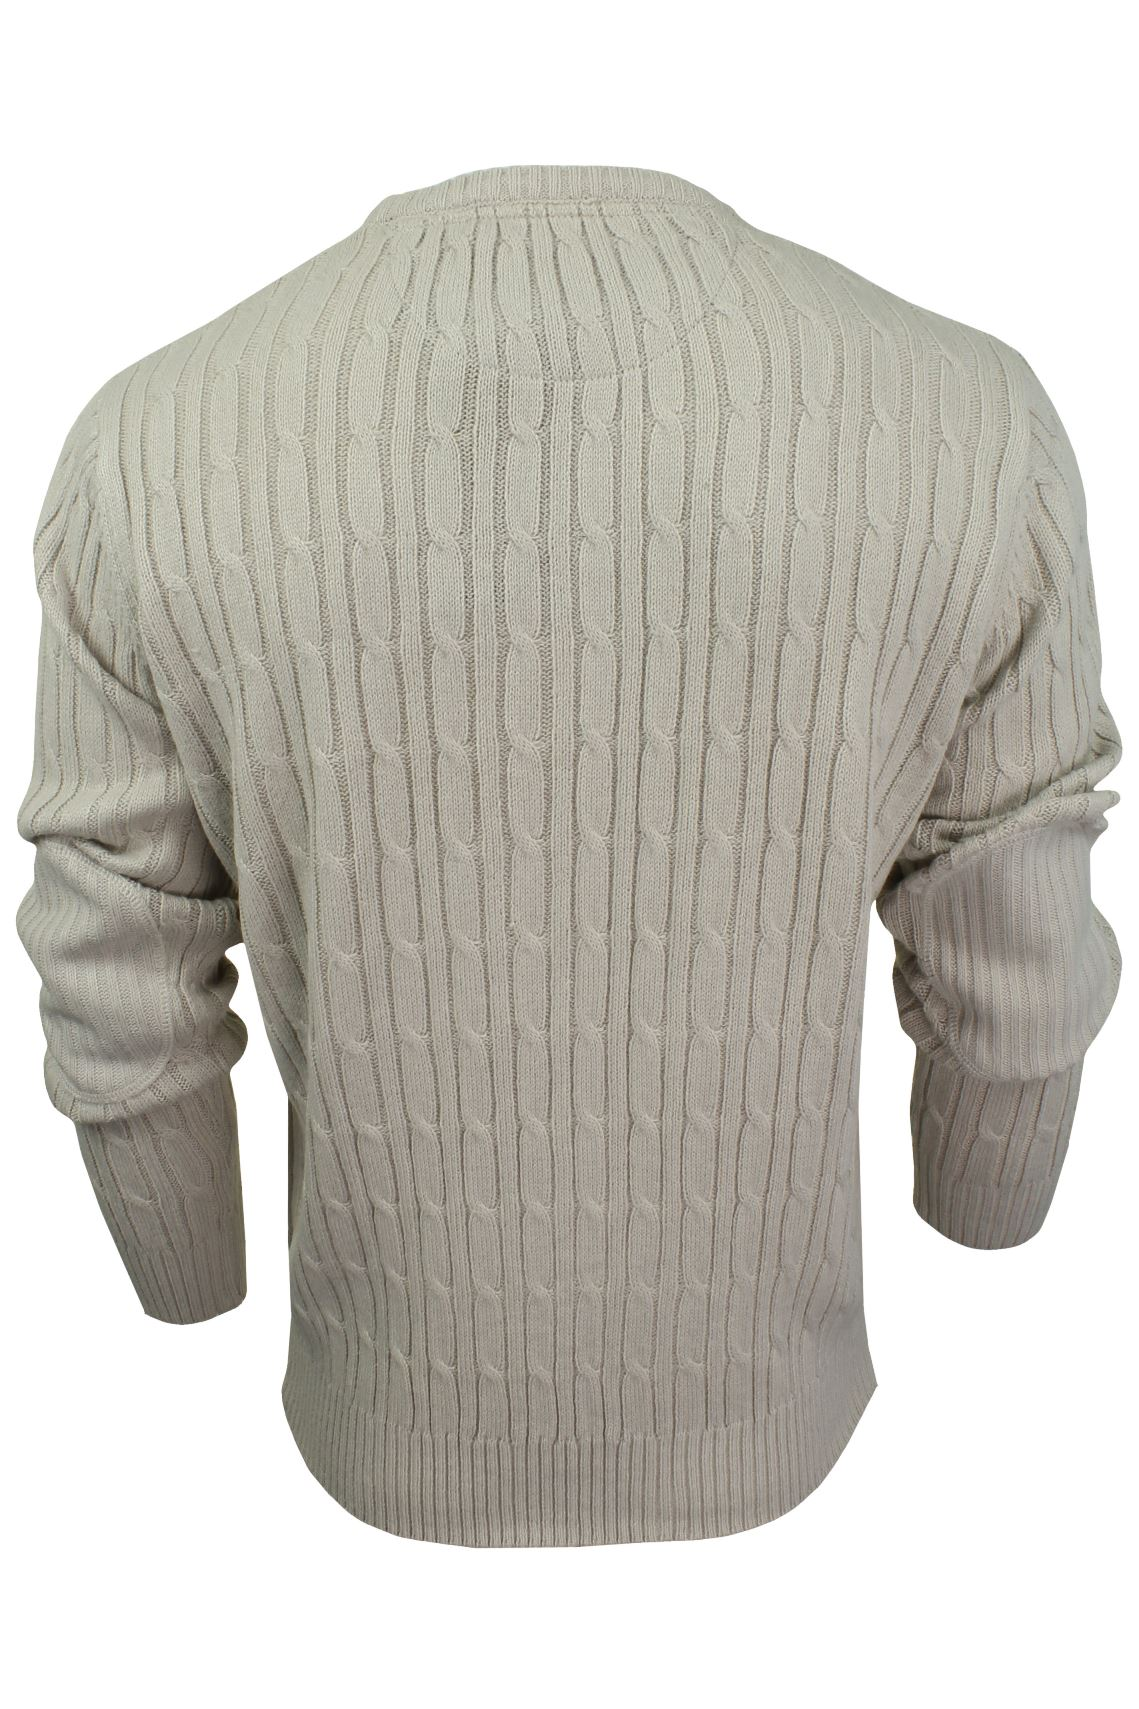 Mens-Jumper-by-Brave-Soul-039-MAO-039-Cable-Knit-Crew-Neck thumbnail 8